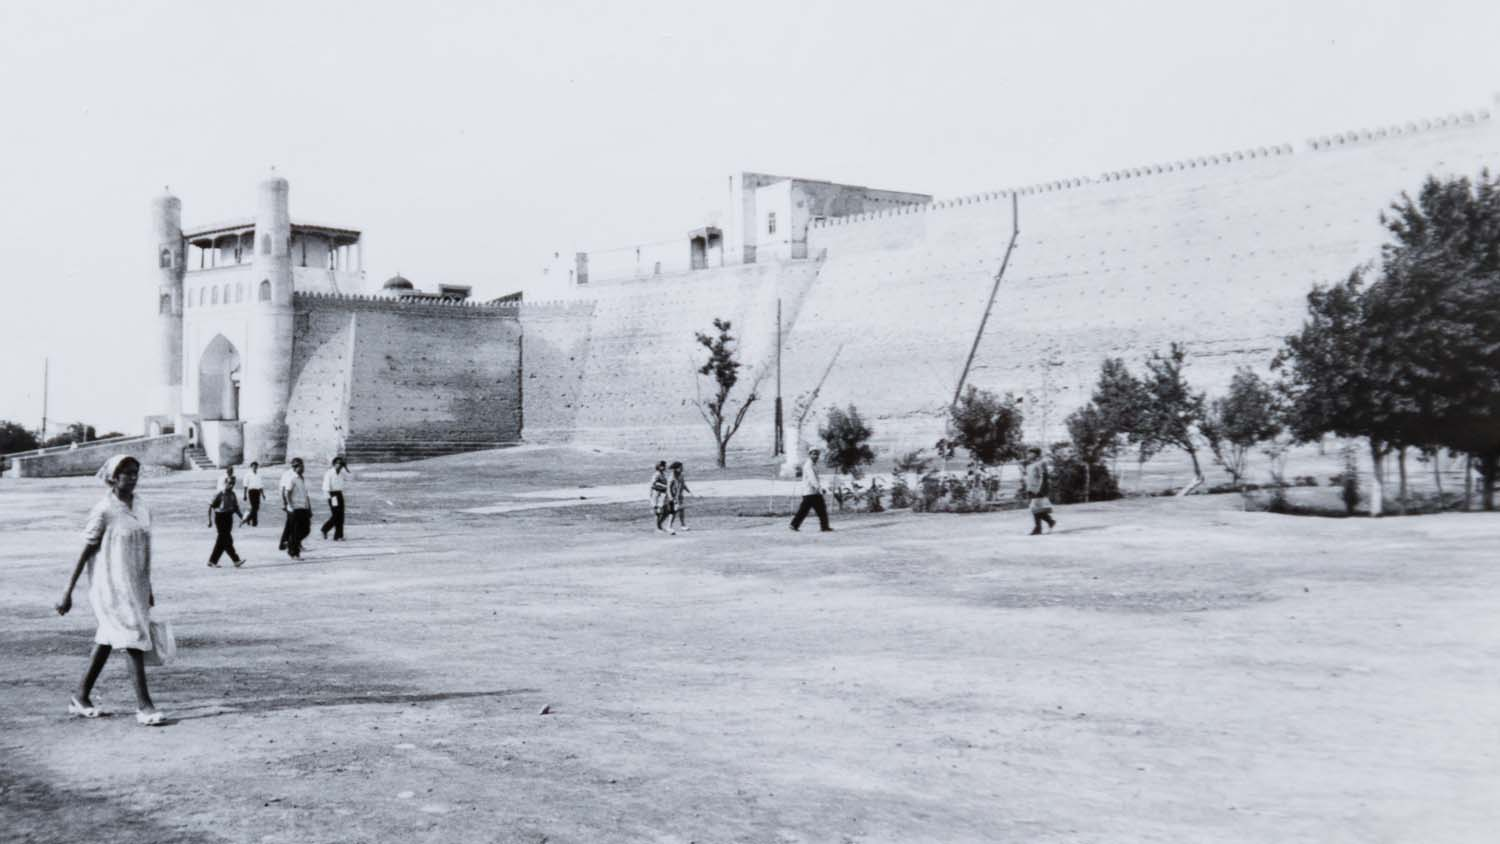 The Ark of Bukhara in 1971